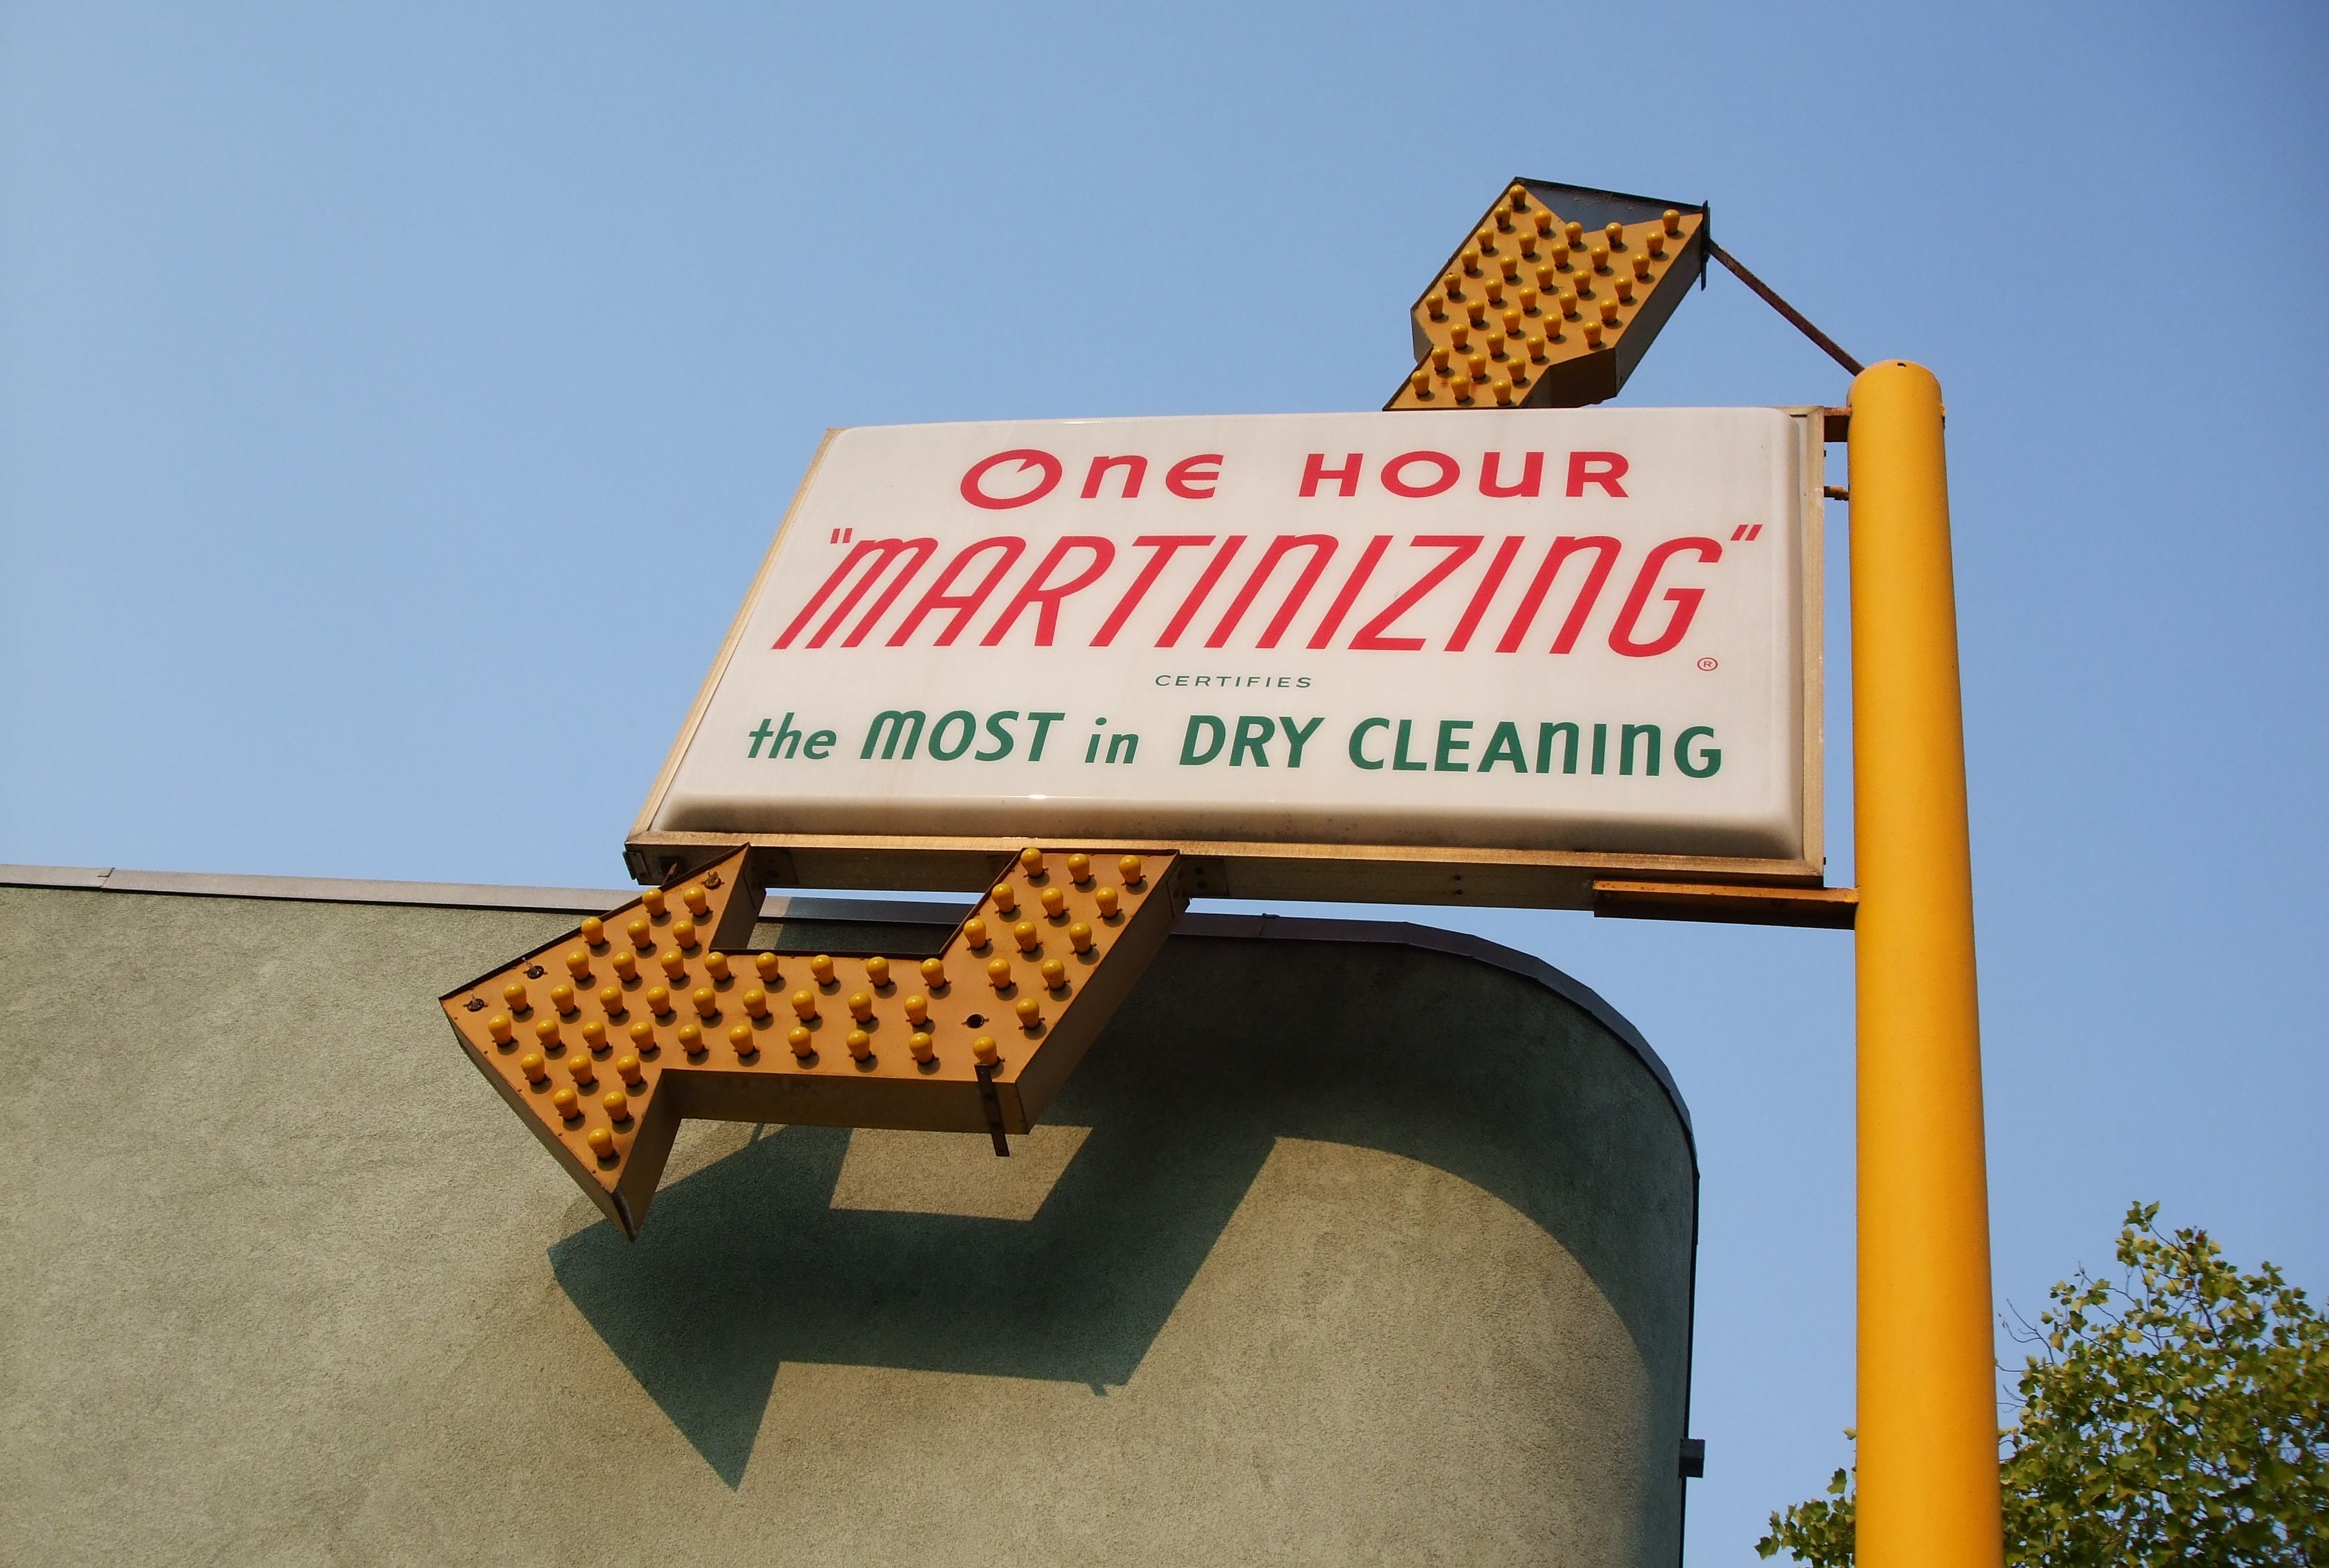 What Is One Hour Martinizing Mental Floss